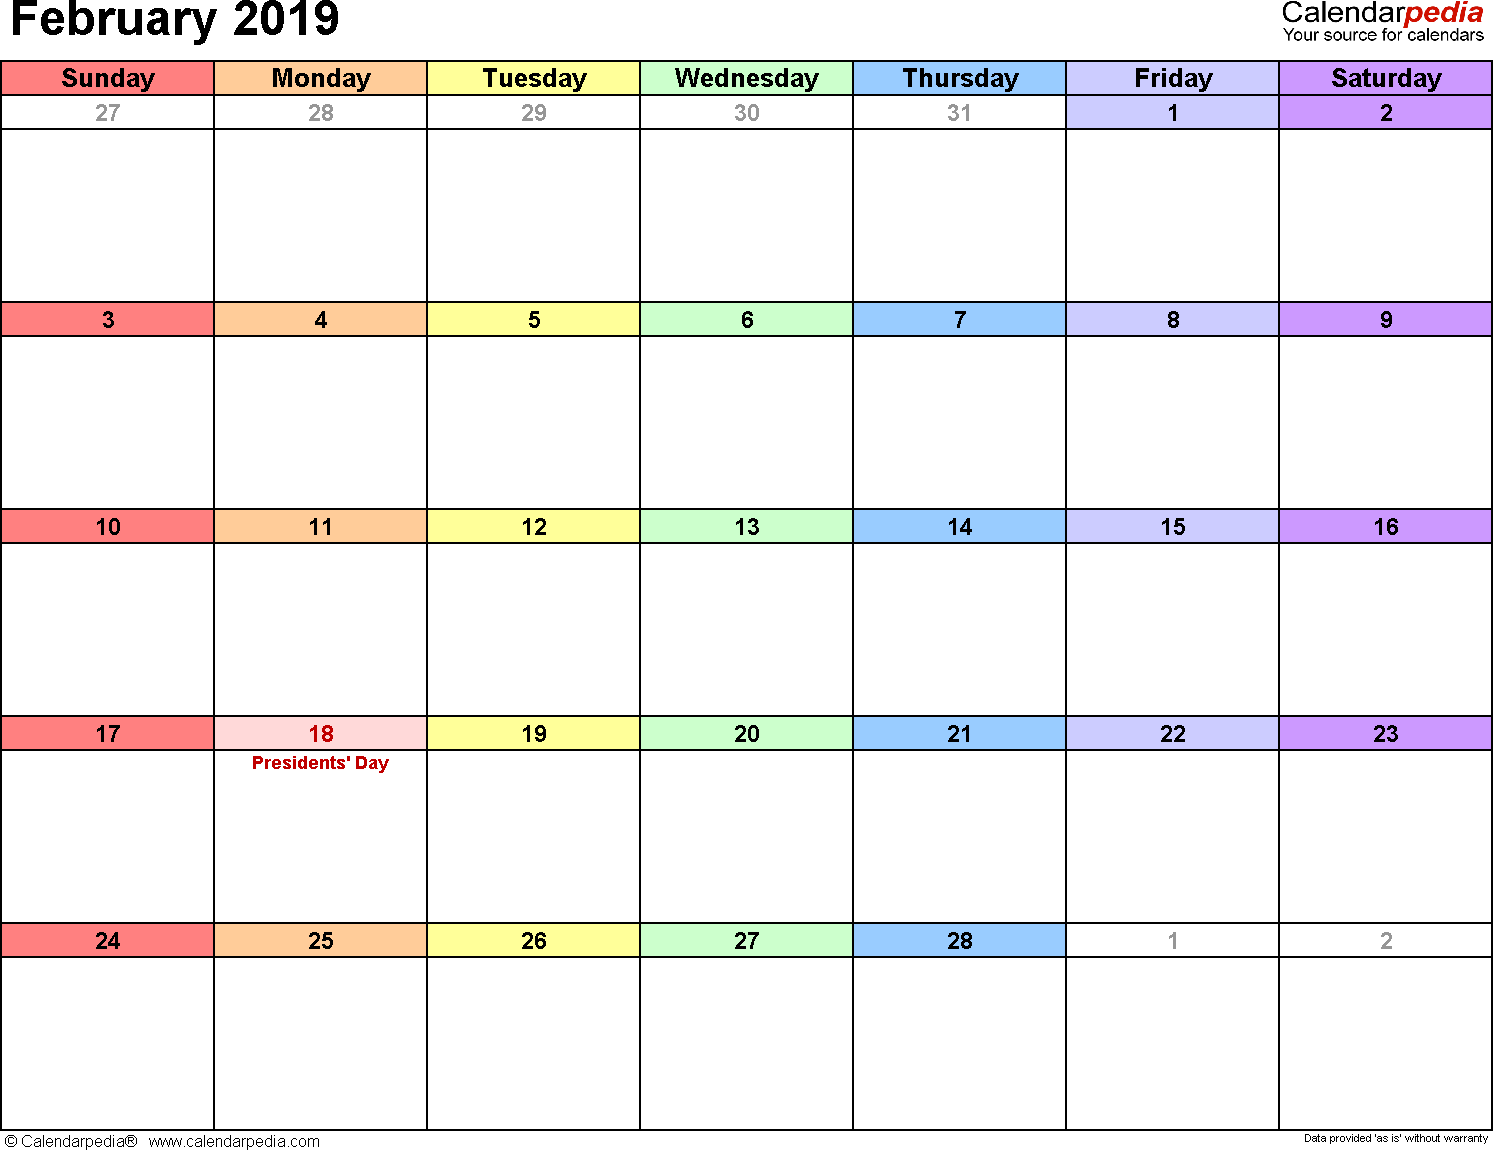 Monthly Calendar Template 2019 February February 2019 Calendars for Word, Excel & PDF